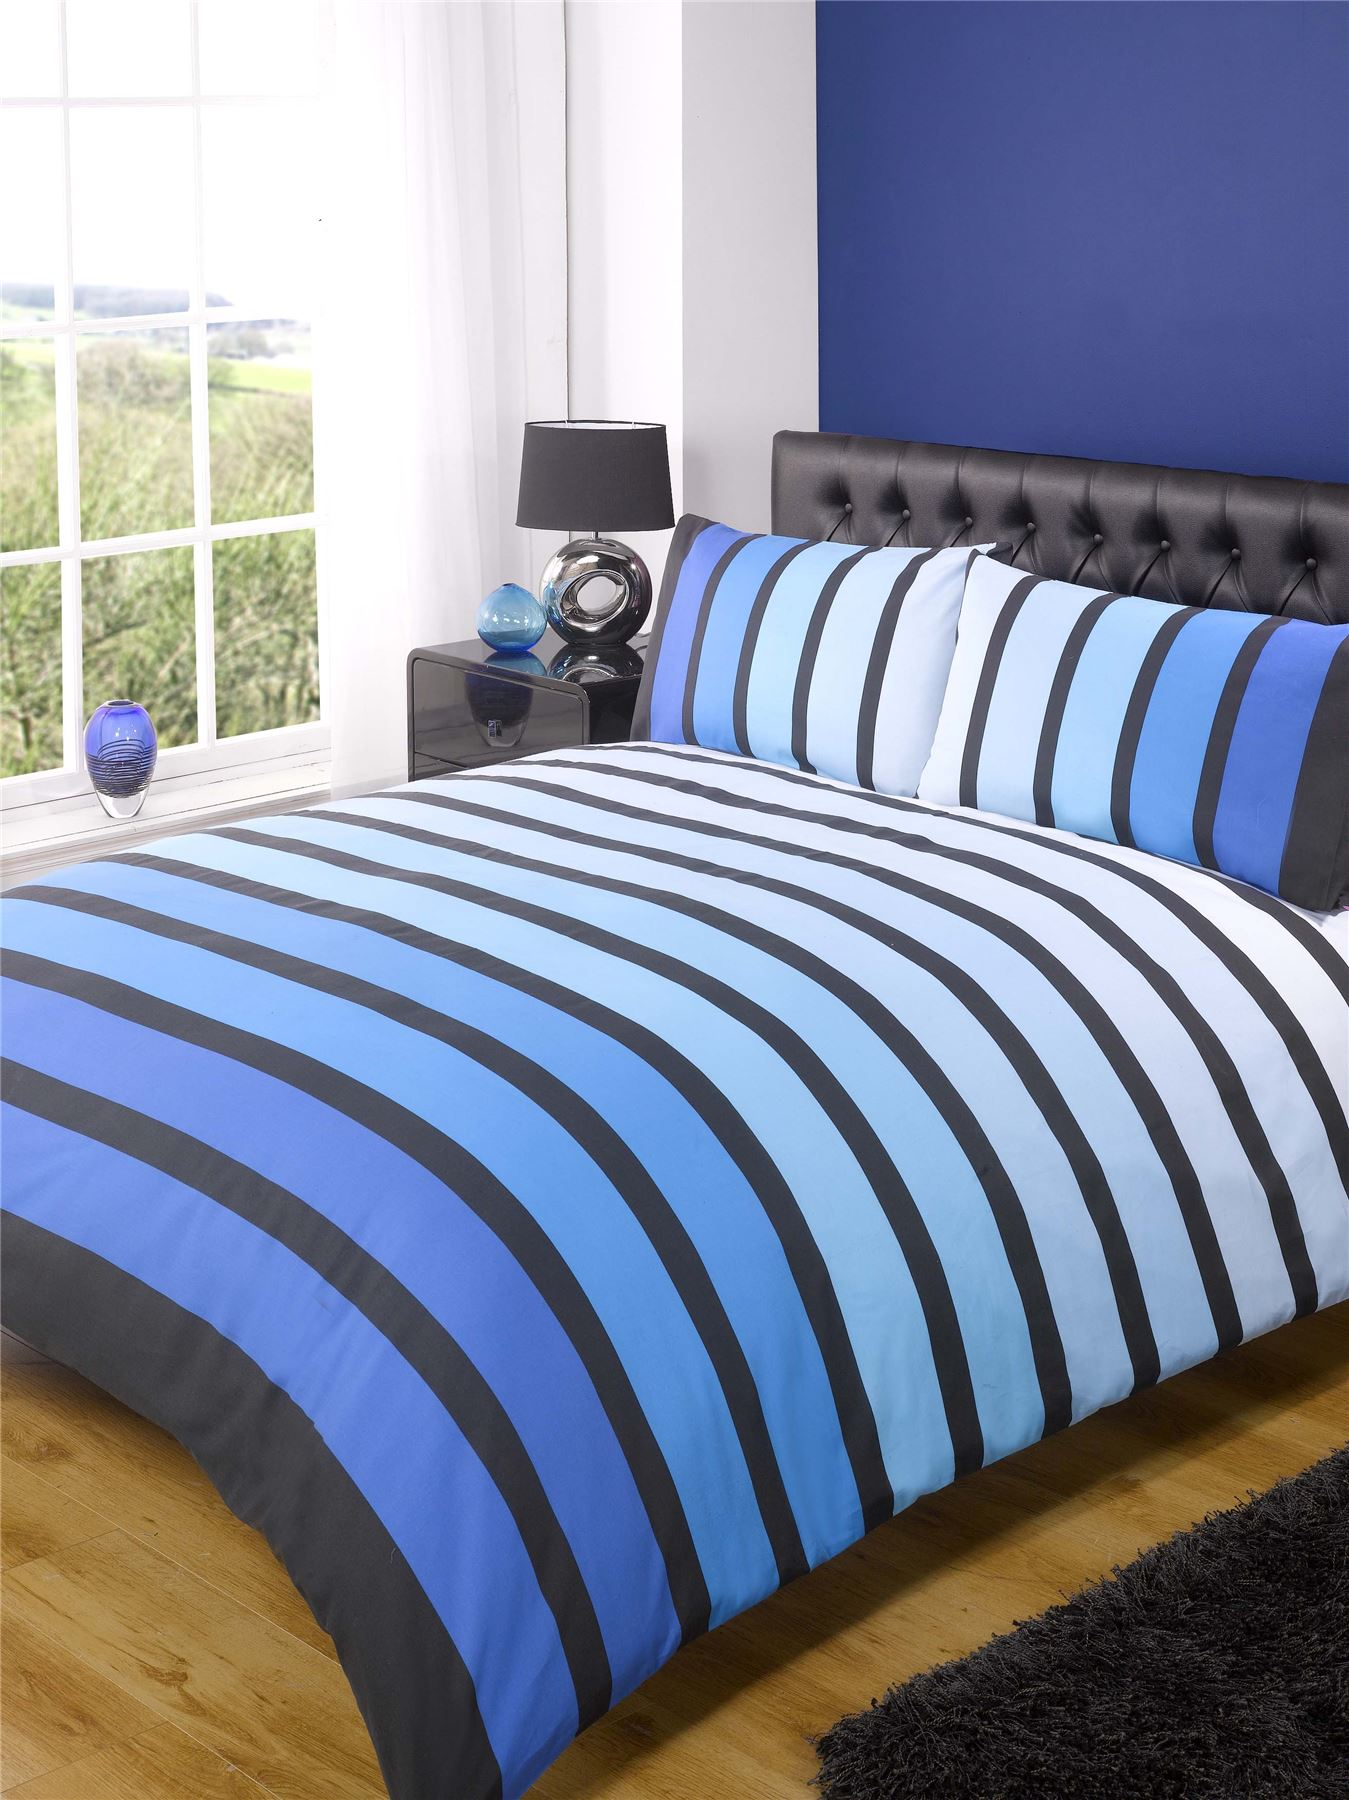 Soho Modern Striped Duvet Cover Quilt Set Blue Black Ebay